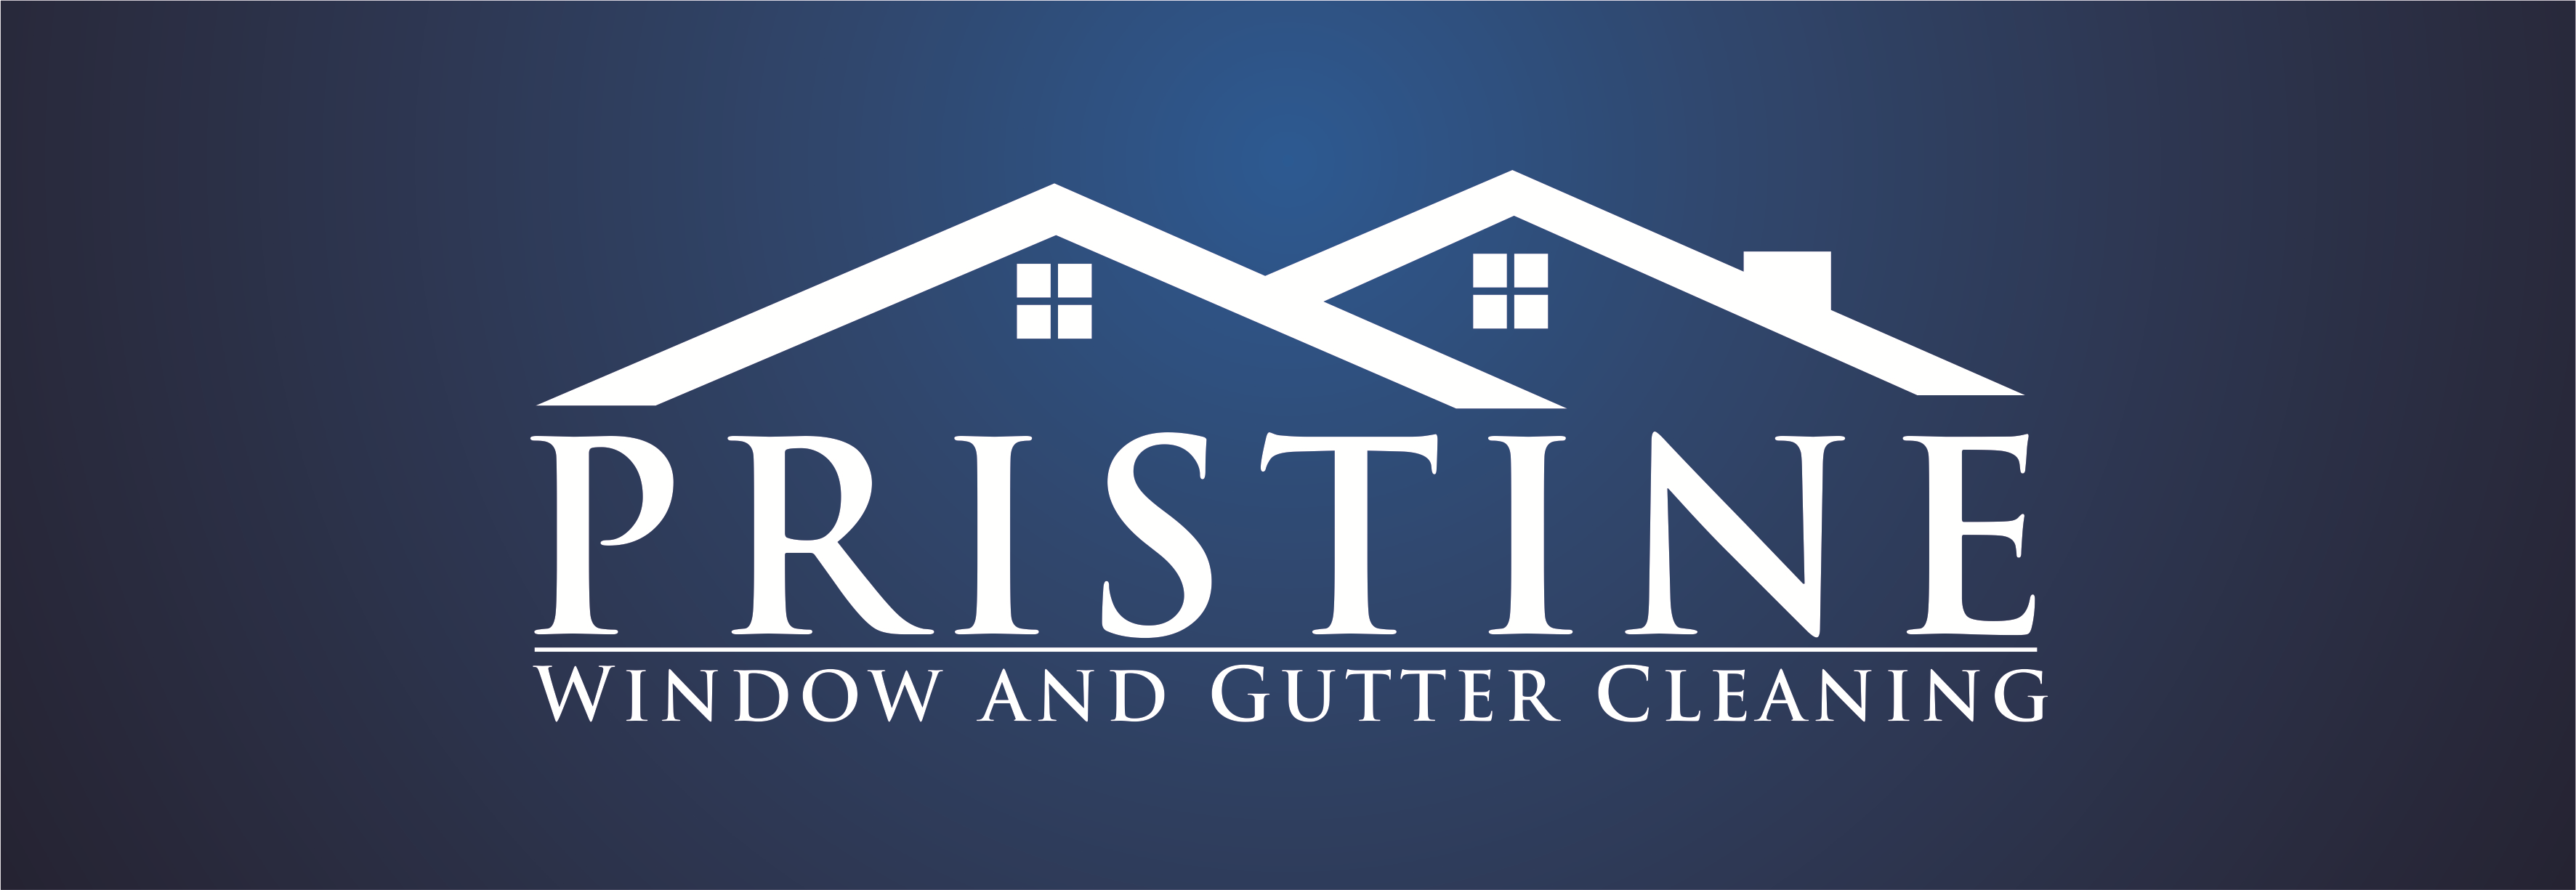 Pristine Window and Gutter Cleaning